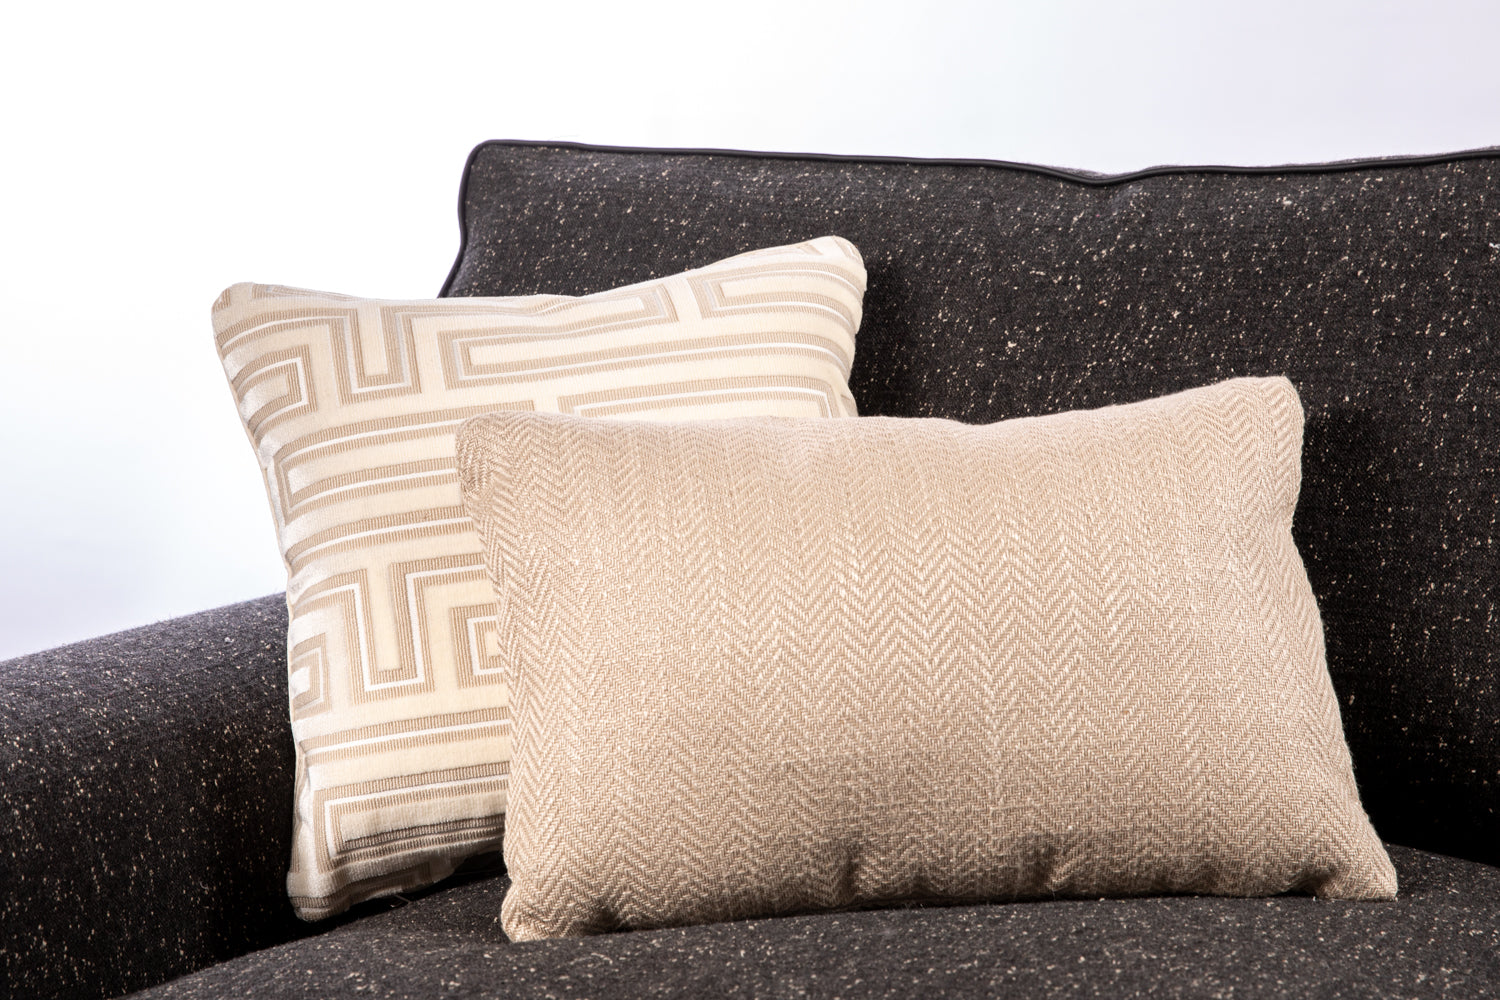 ffabb toss pillows RADG fabrics cut velvet